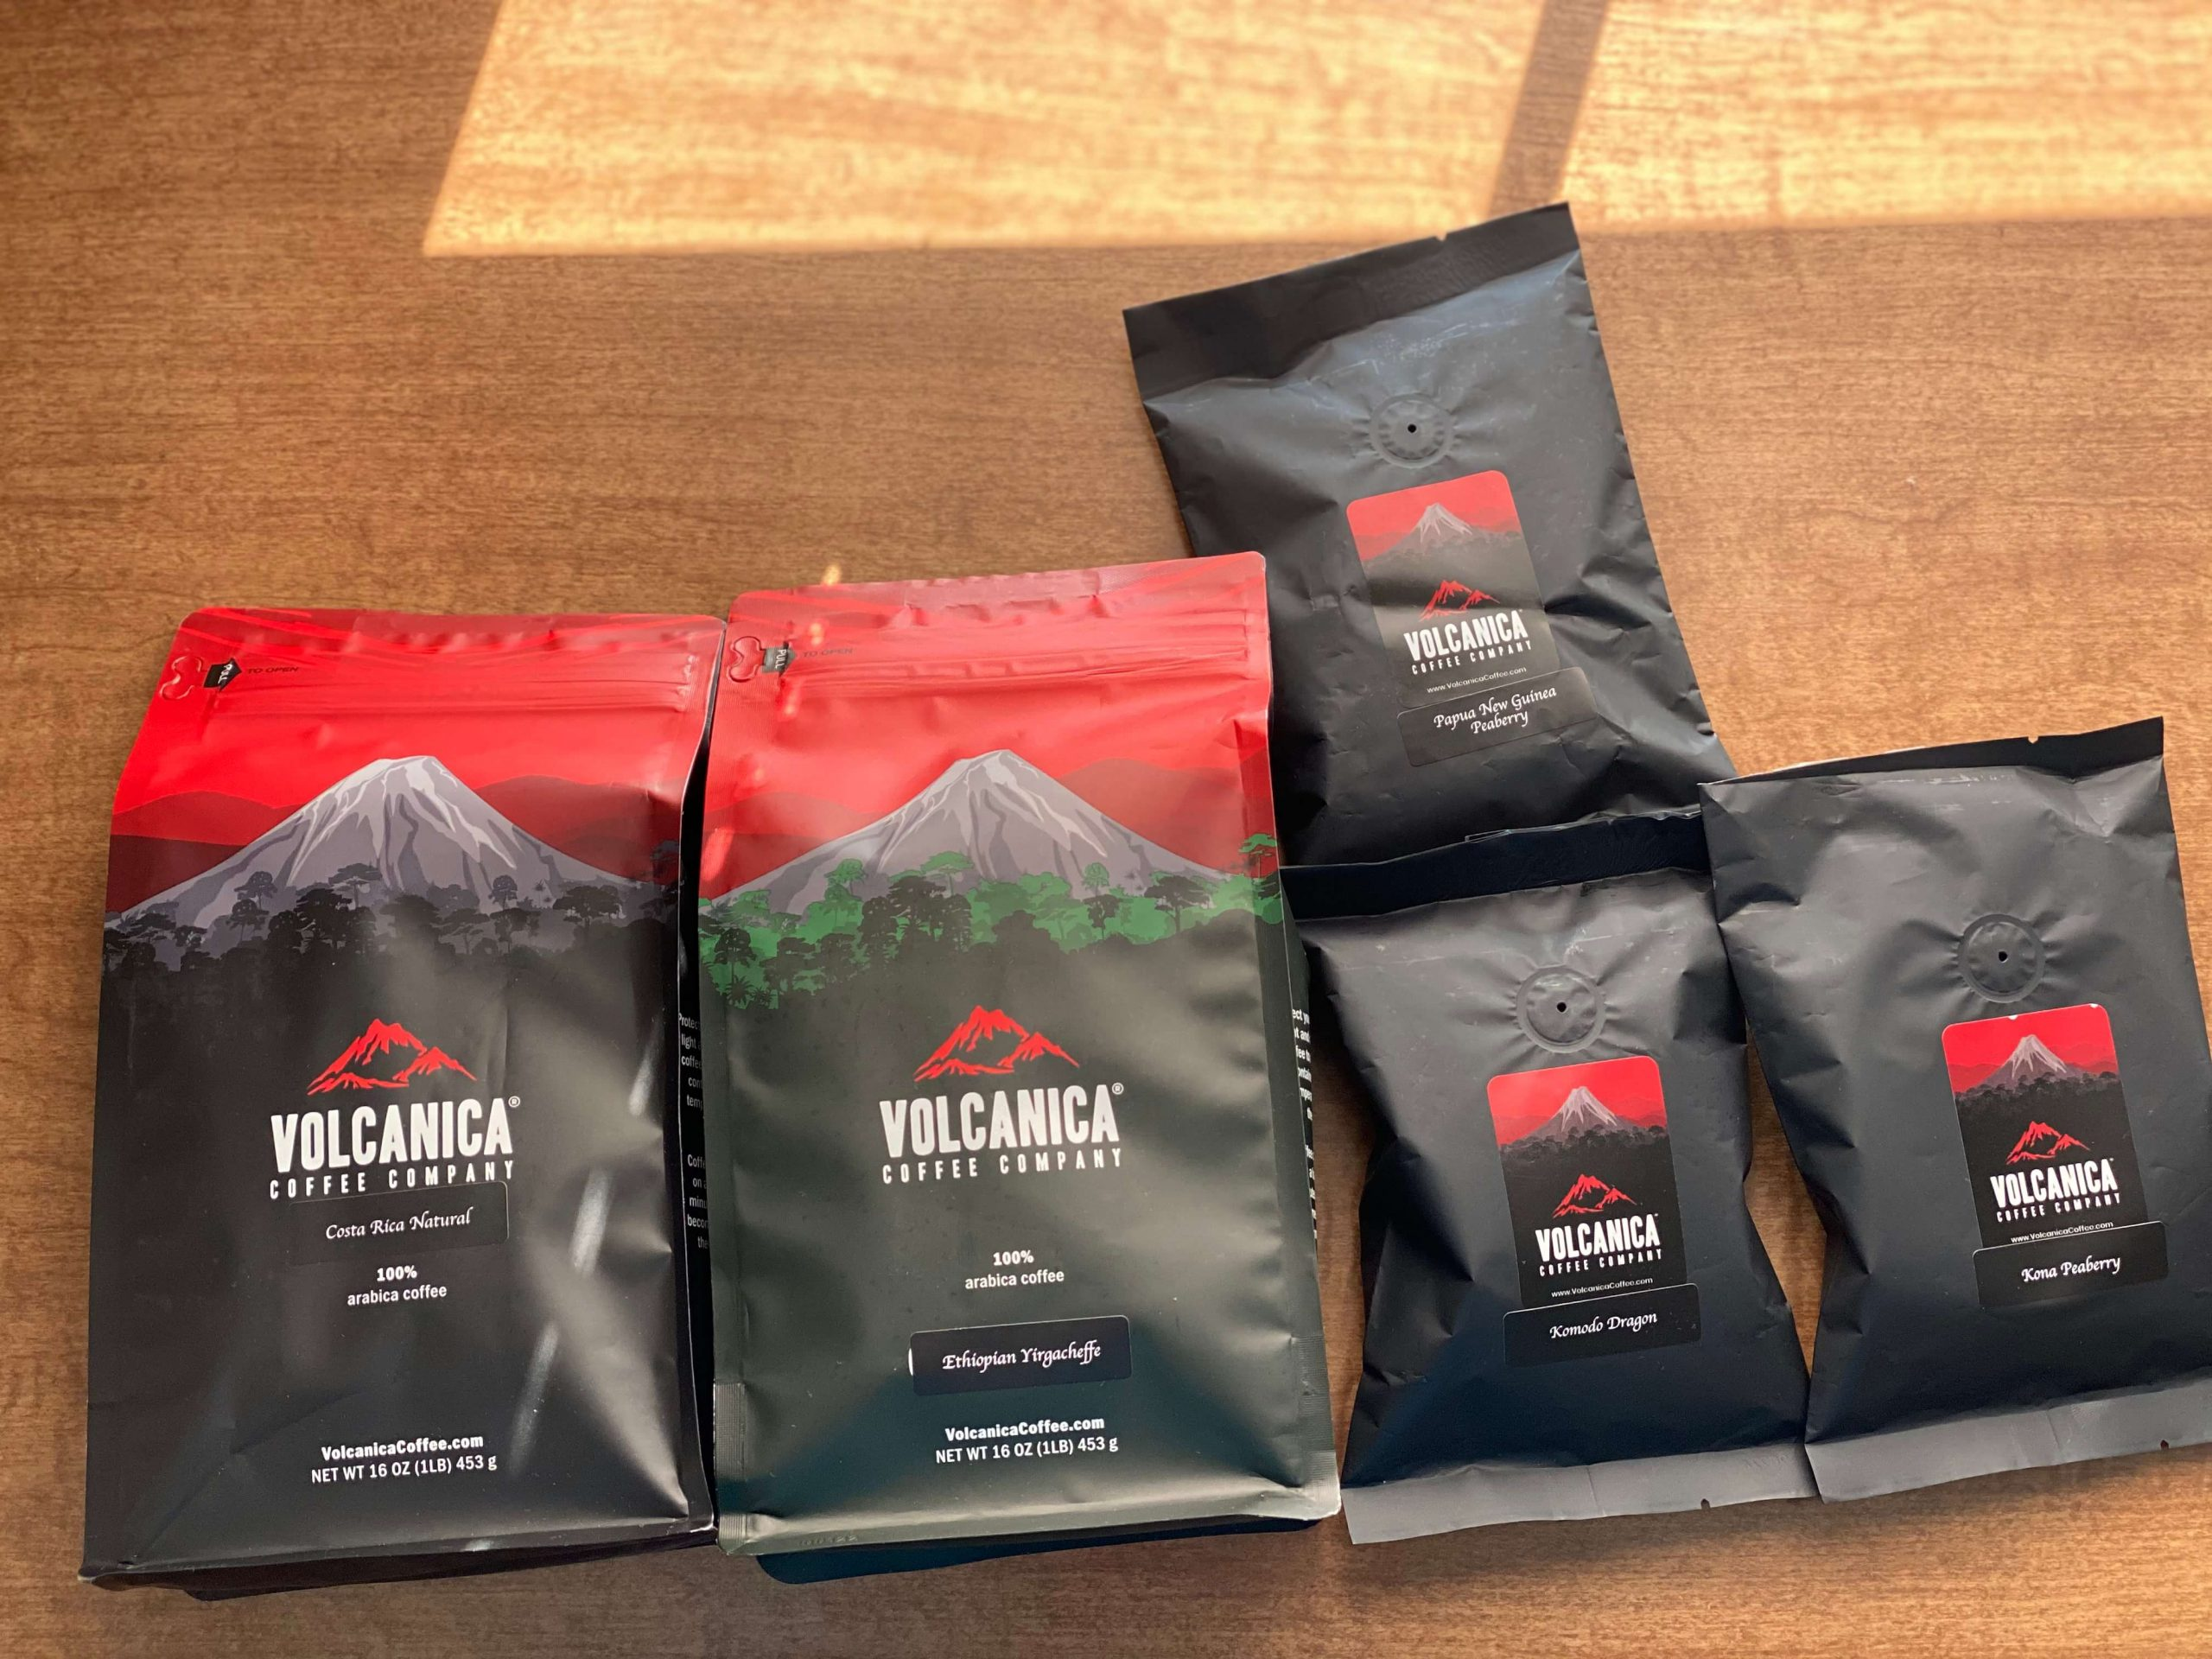 Volcanica Coffees Packed